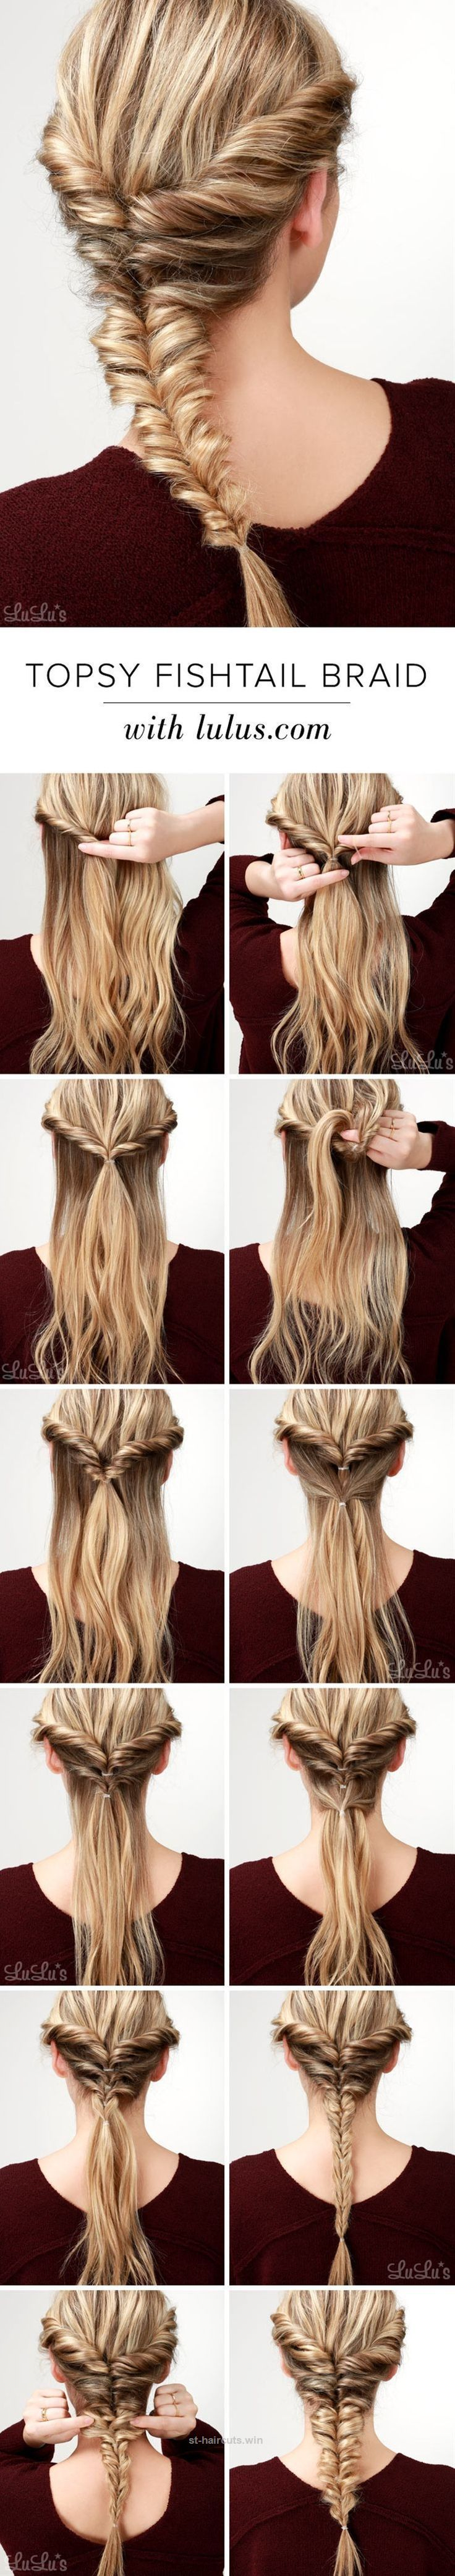 Great Topsy+Fishtail+Braid+Tutorial  The post  Topsy+Fishtail+Braid+Tutorial…  appeared first on  ST Haircuts .